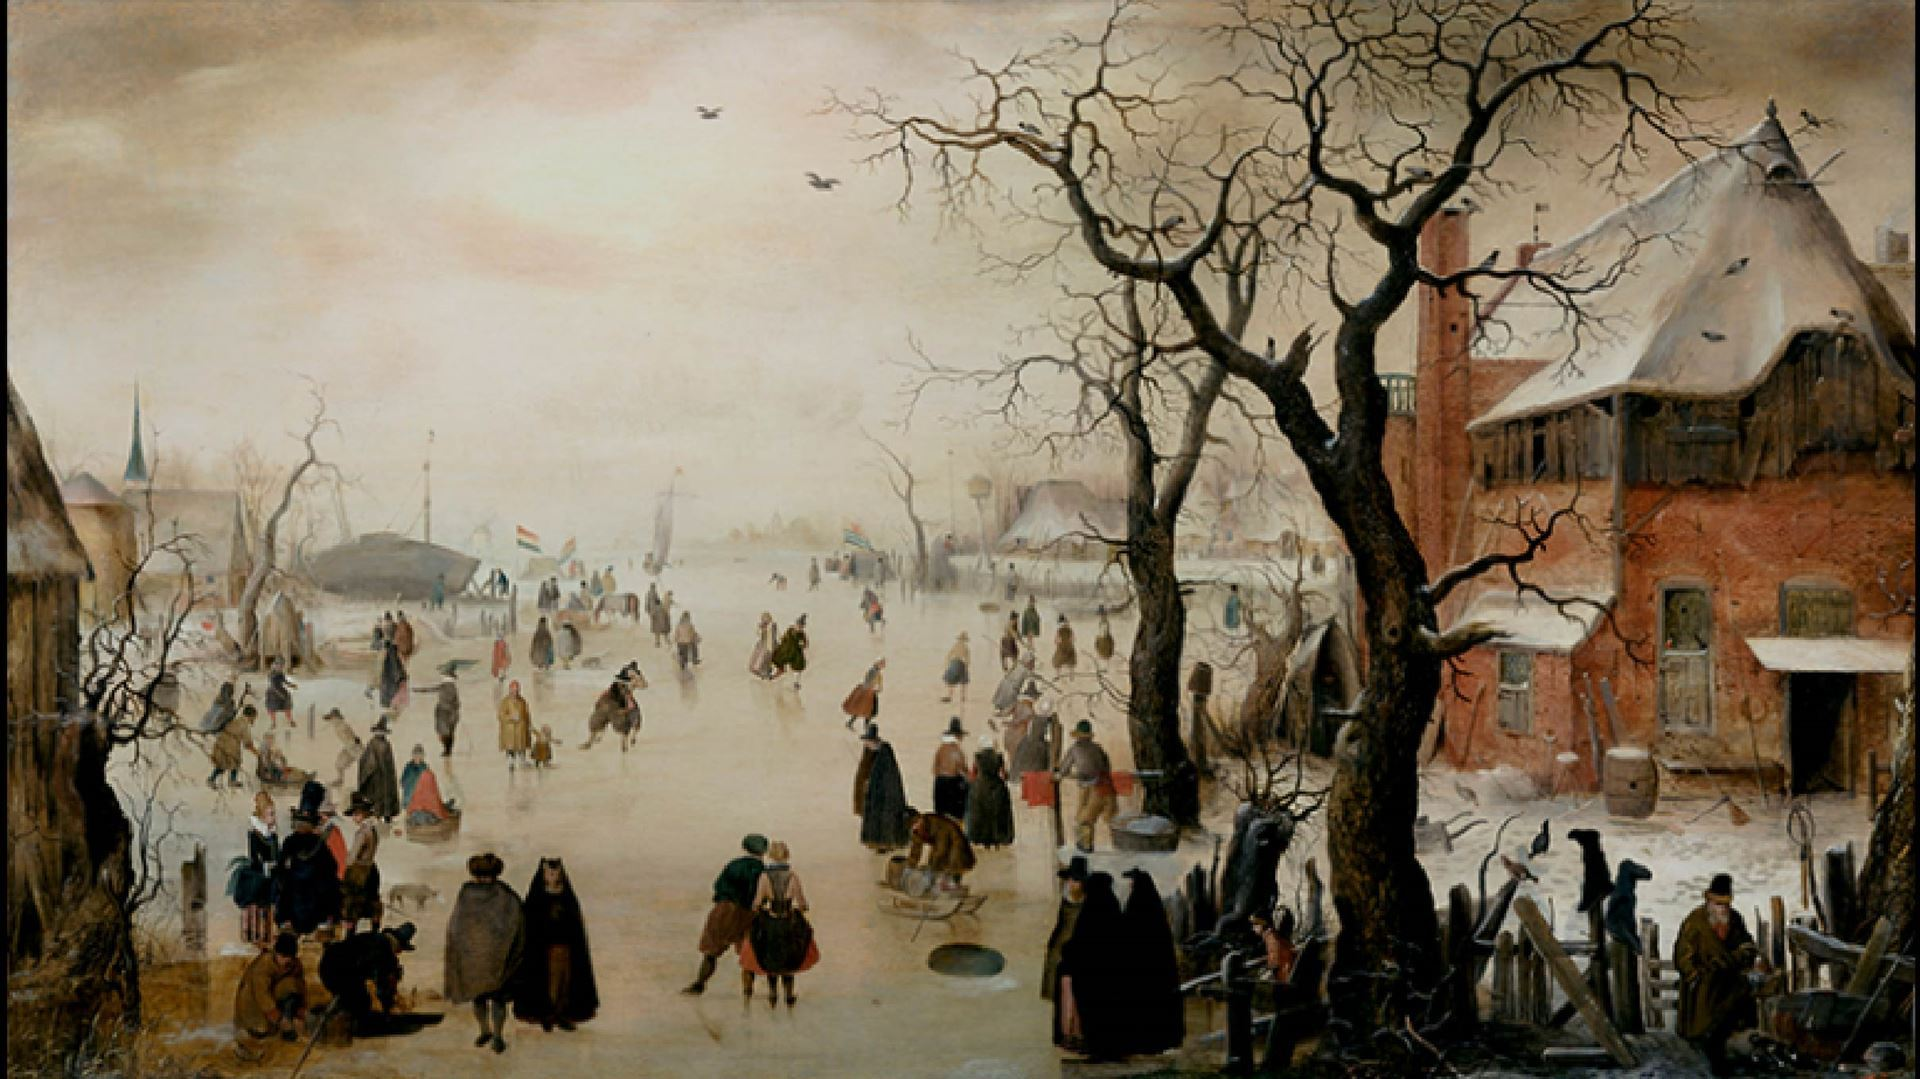 Hendrick Avercamp, Winter Landscape near a Village, about 1610–15. Oil on panel. 53.3 x 94.6 cm. Promised gift of Rose-Marie and Eijk van Otterloo, in support of the Center for Netherlandish Art. Courtesy, Museum of Fine Arts, Boston.